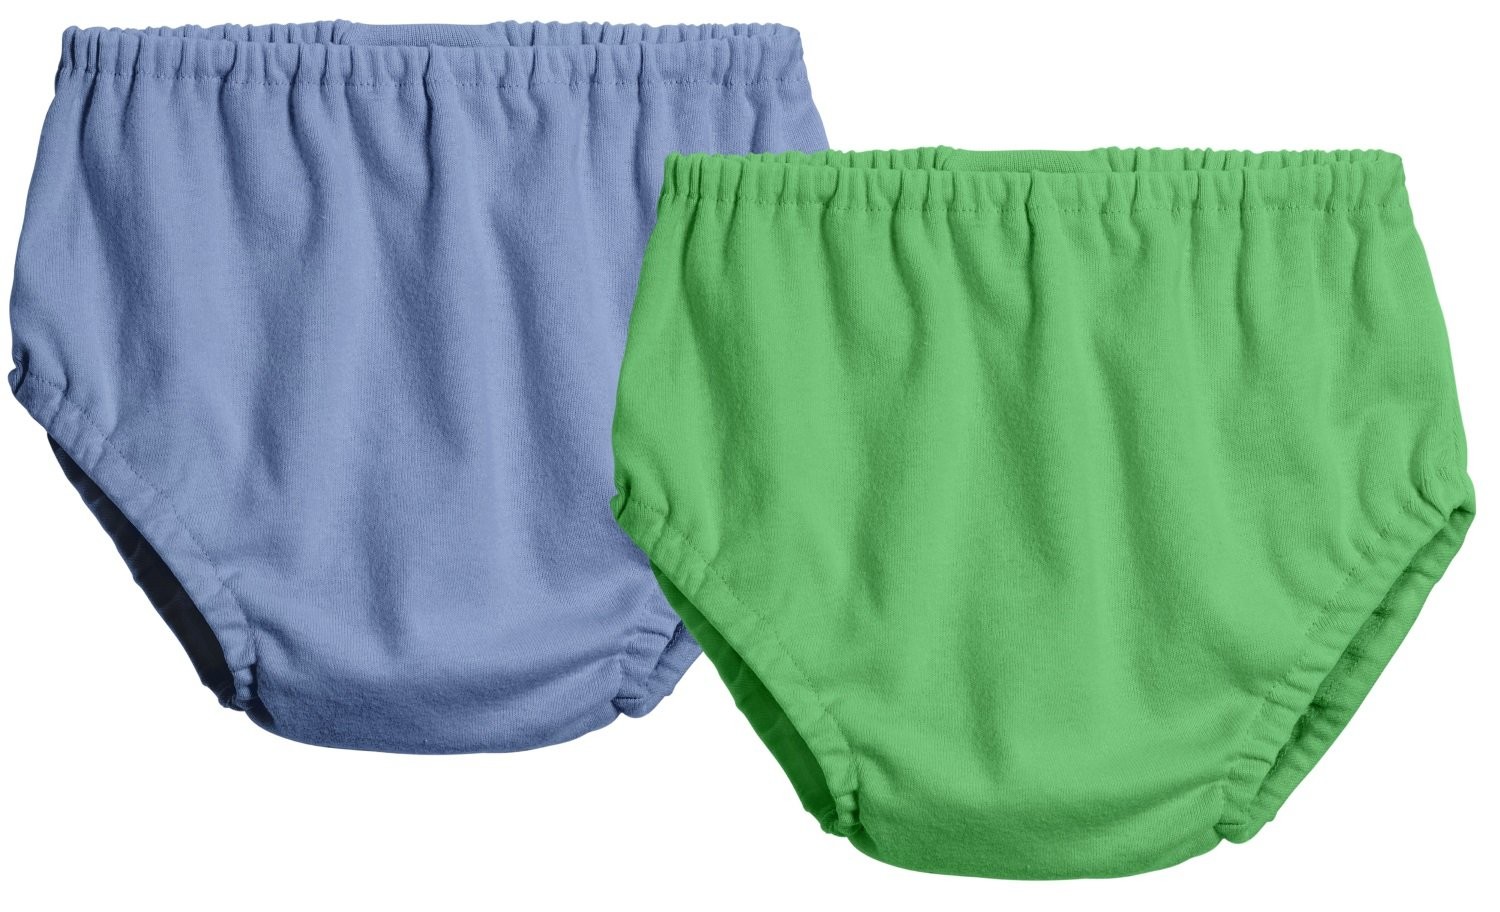 City Threads 2-Pack Baby Girls' and Baby Boys' Unisex Diaper Covers Bloomers Soft Cotton, Denim Blue/Elf, 12/18 m